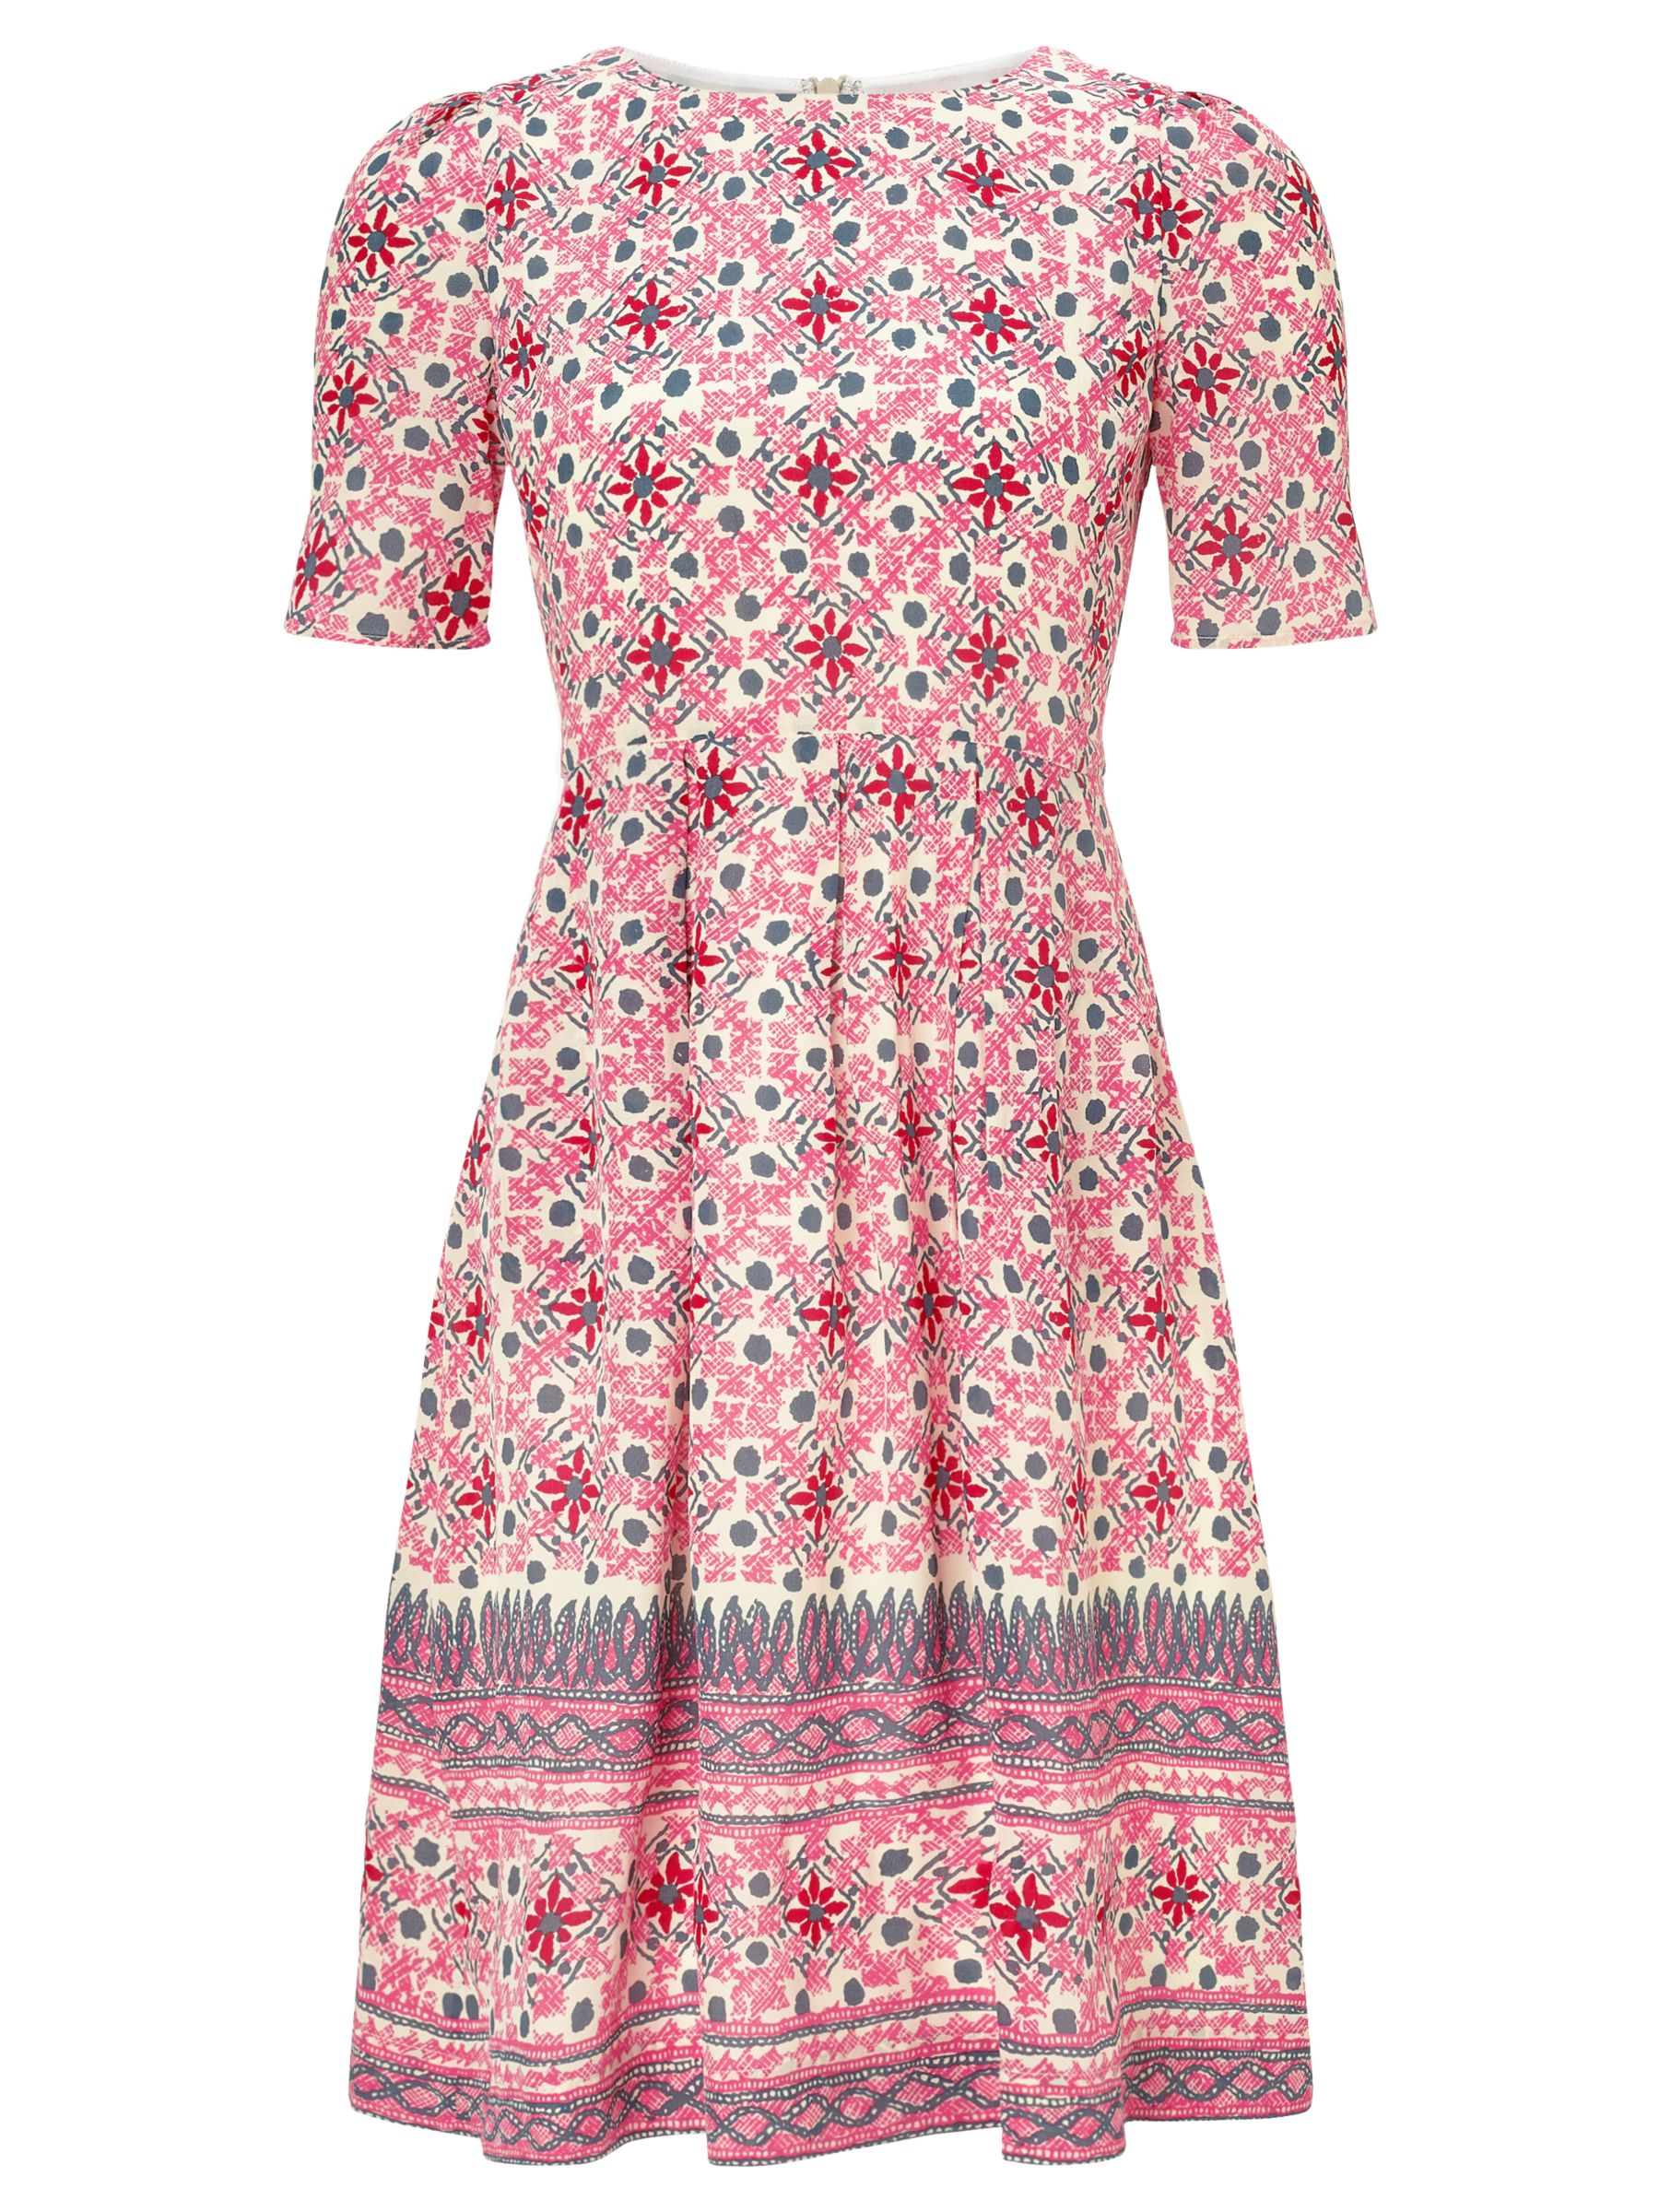 Somerset by Alice Temperley Mexican Border Silk Dress, Pink